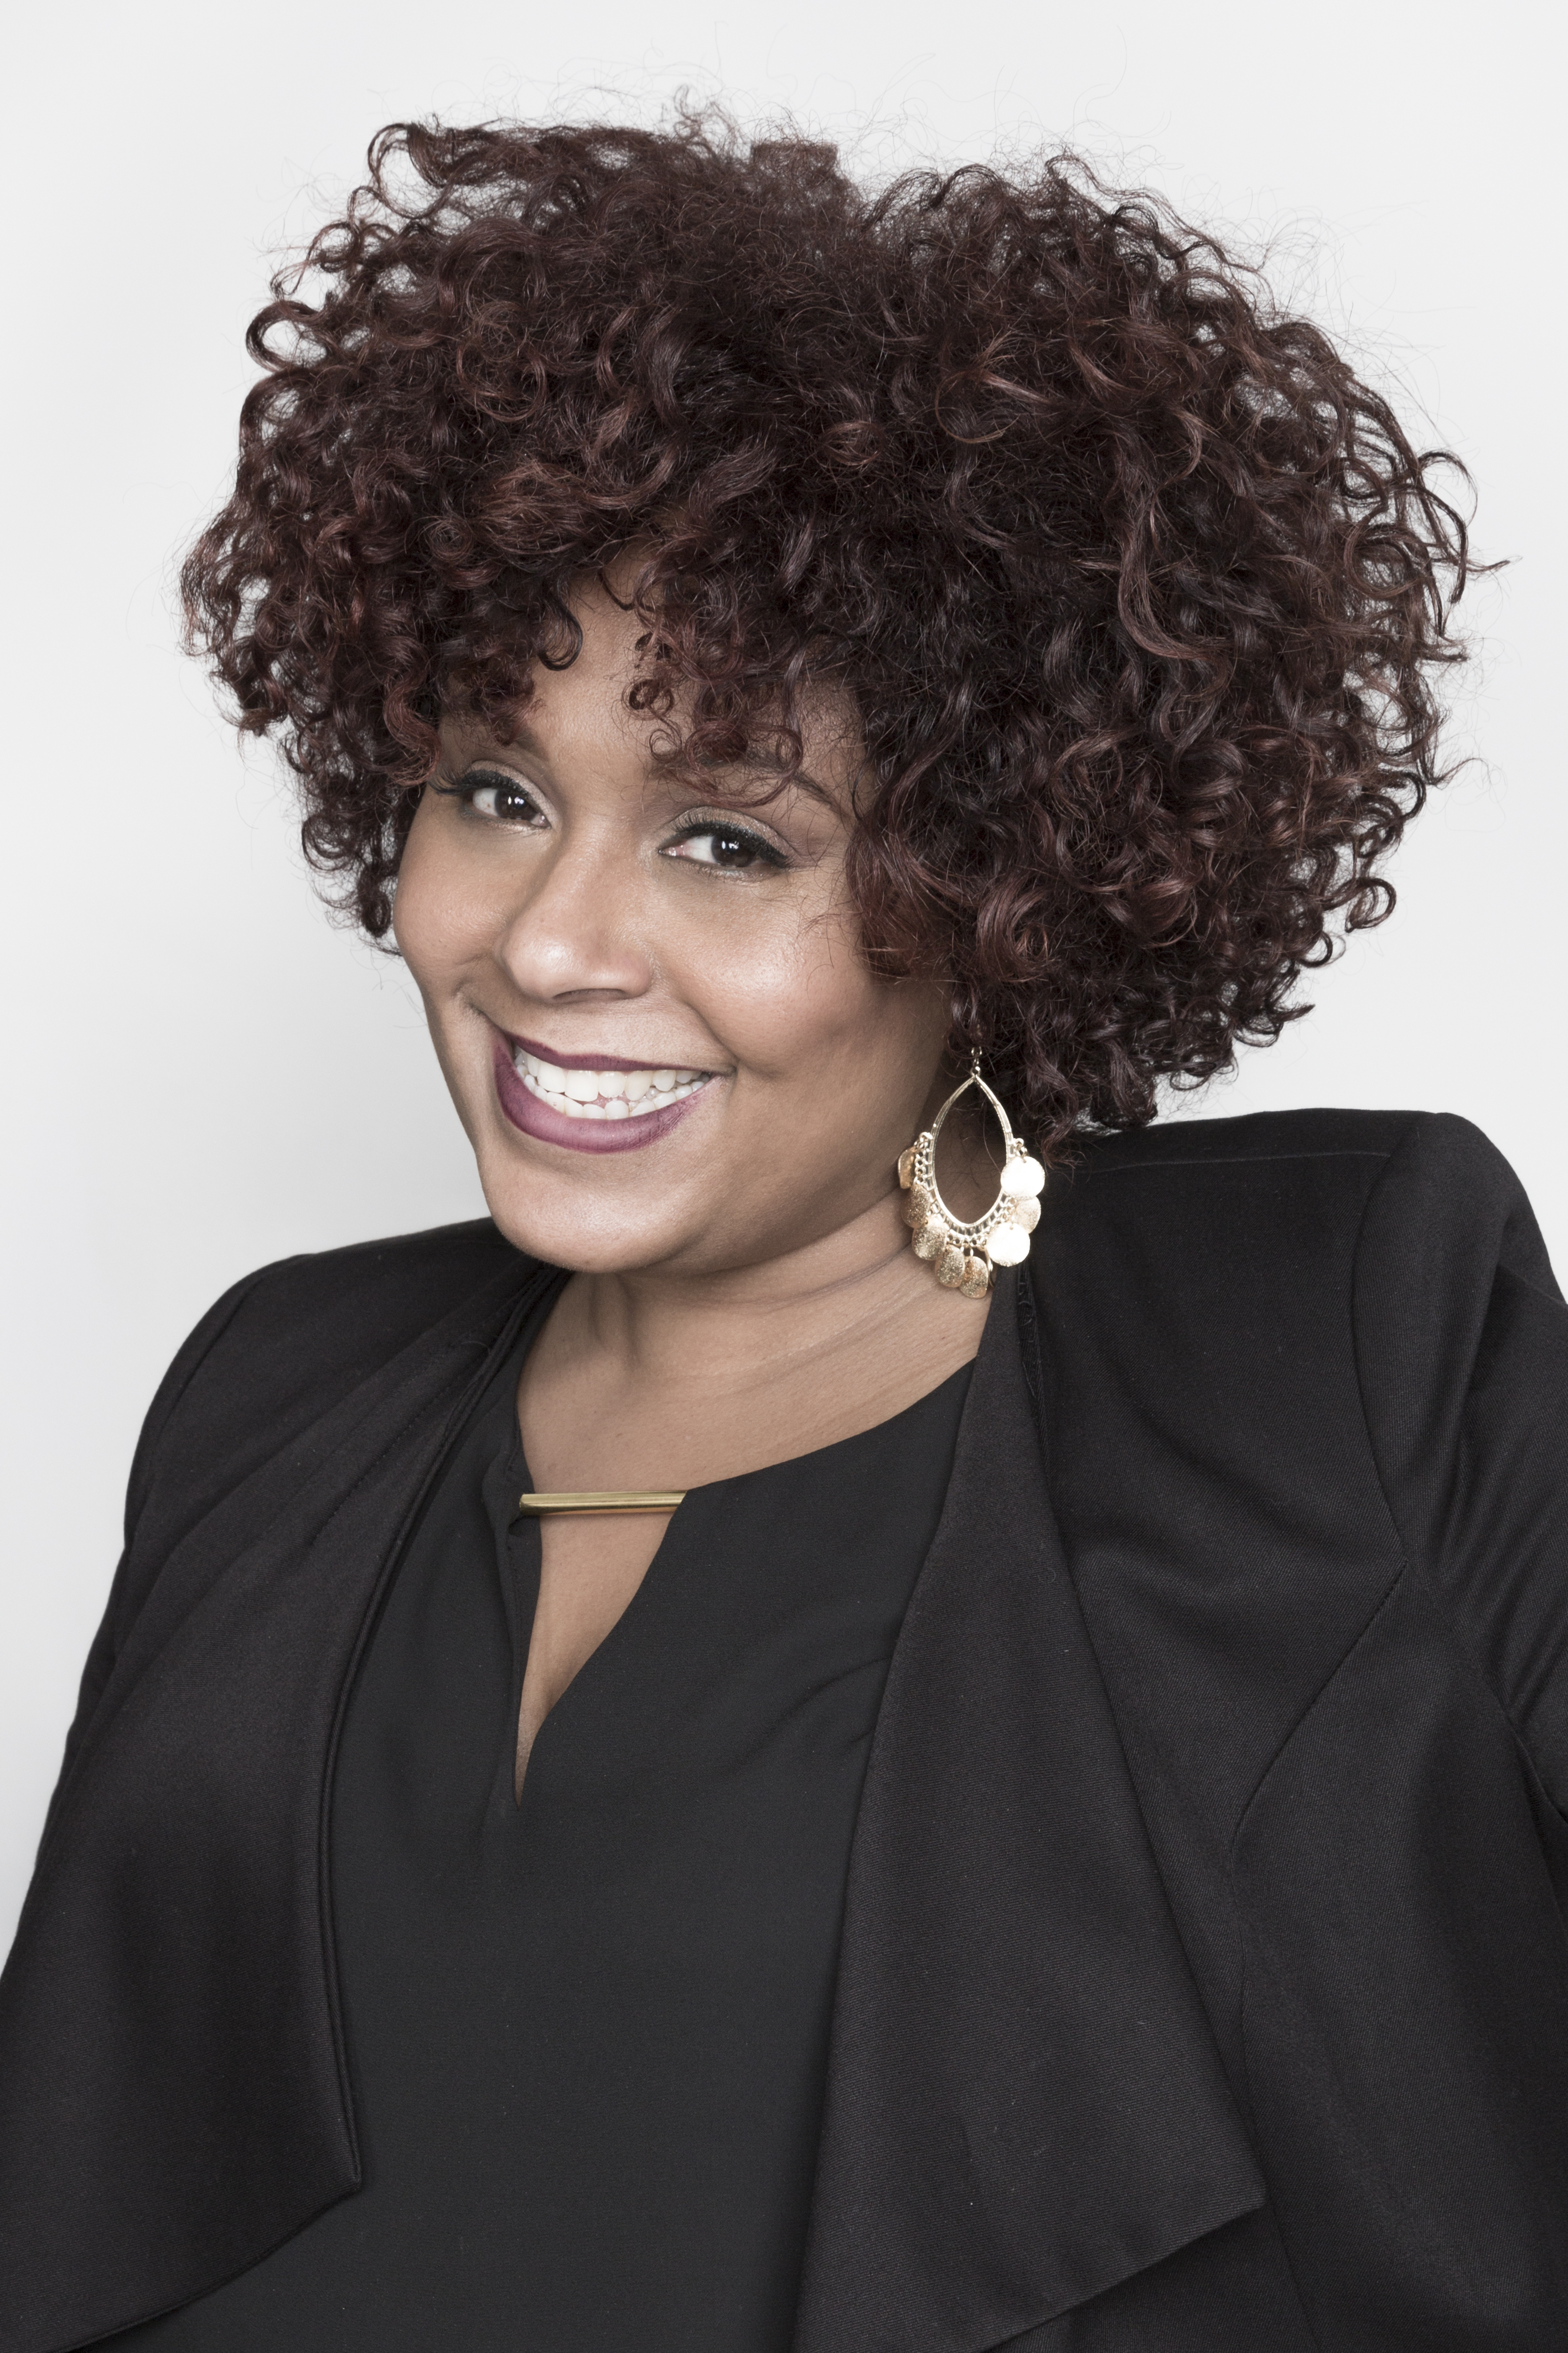 Michaella Blissett Williams, owner of Salon 718, with four locations in Brooklyn, New York.  -